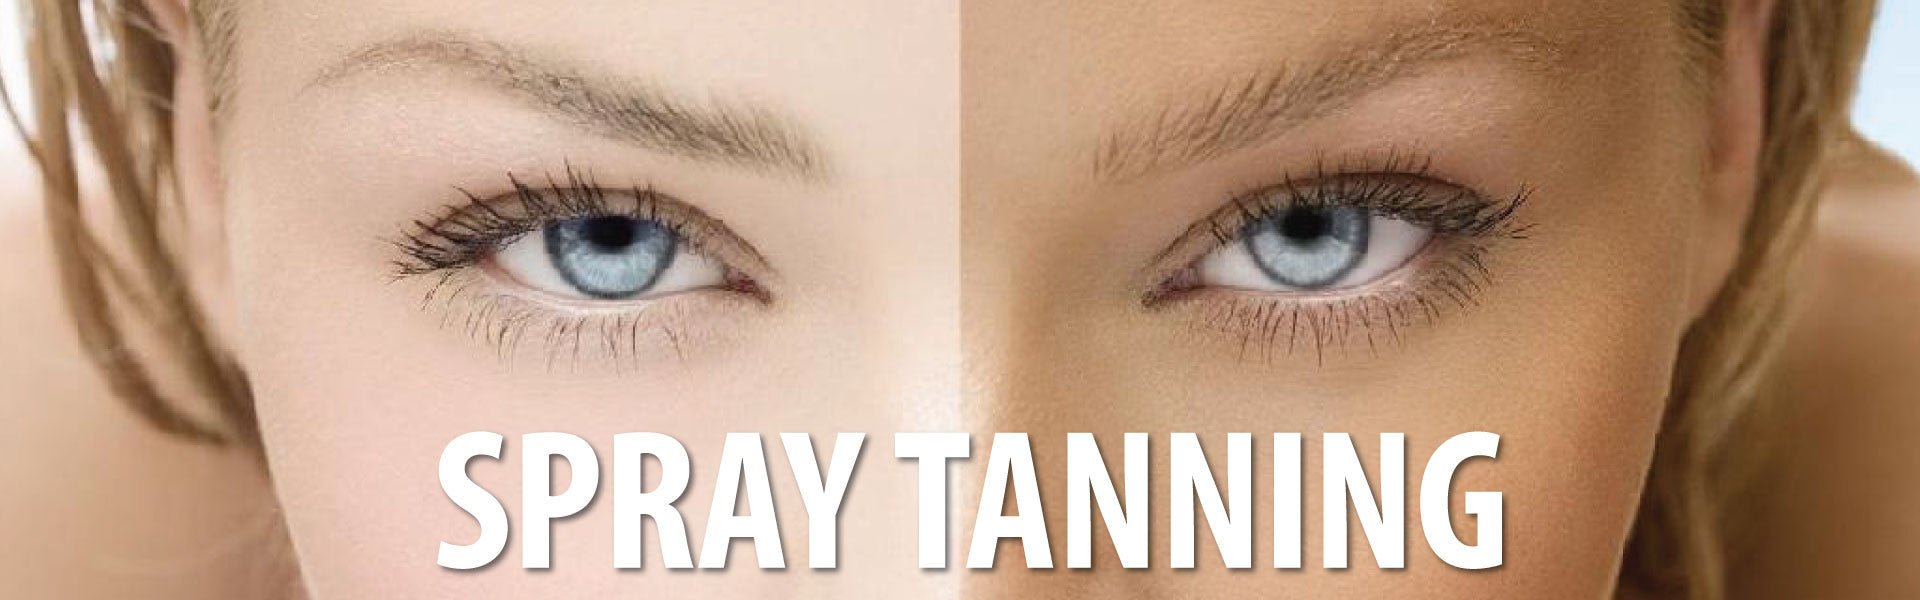 Air Brush Spray Tanning Salon in West Palm Beach